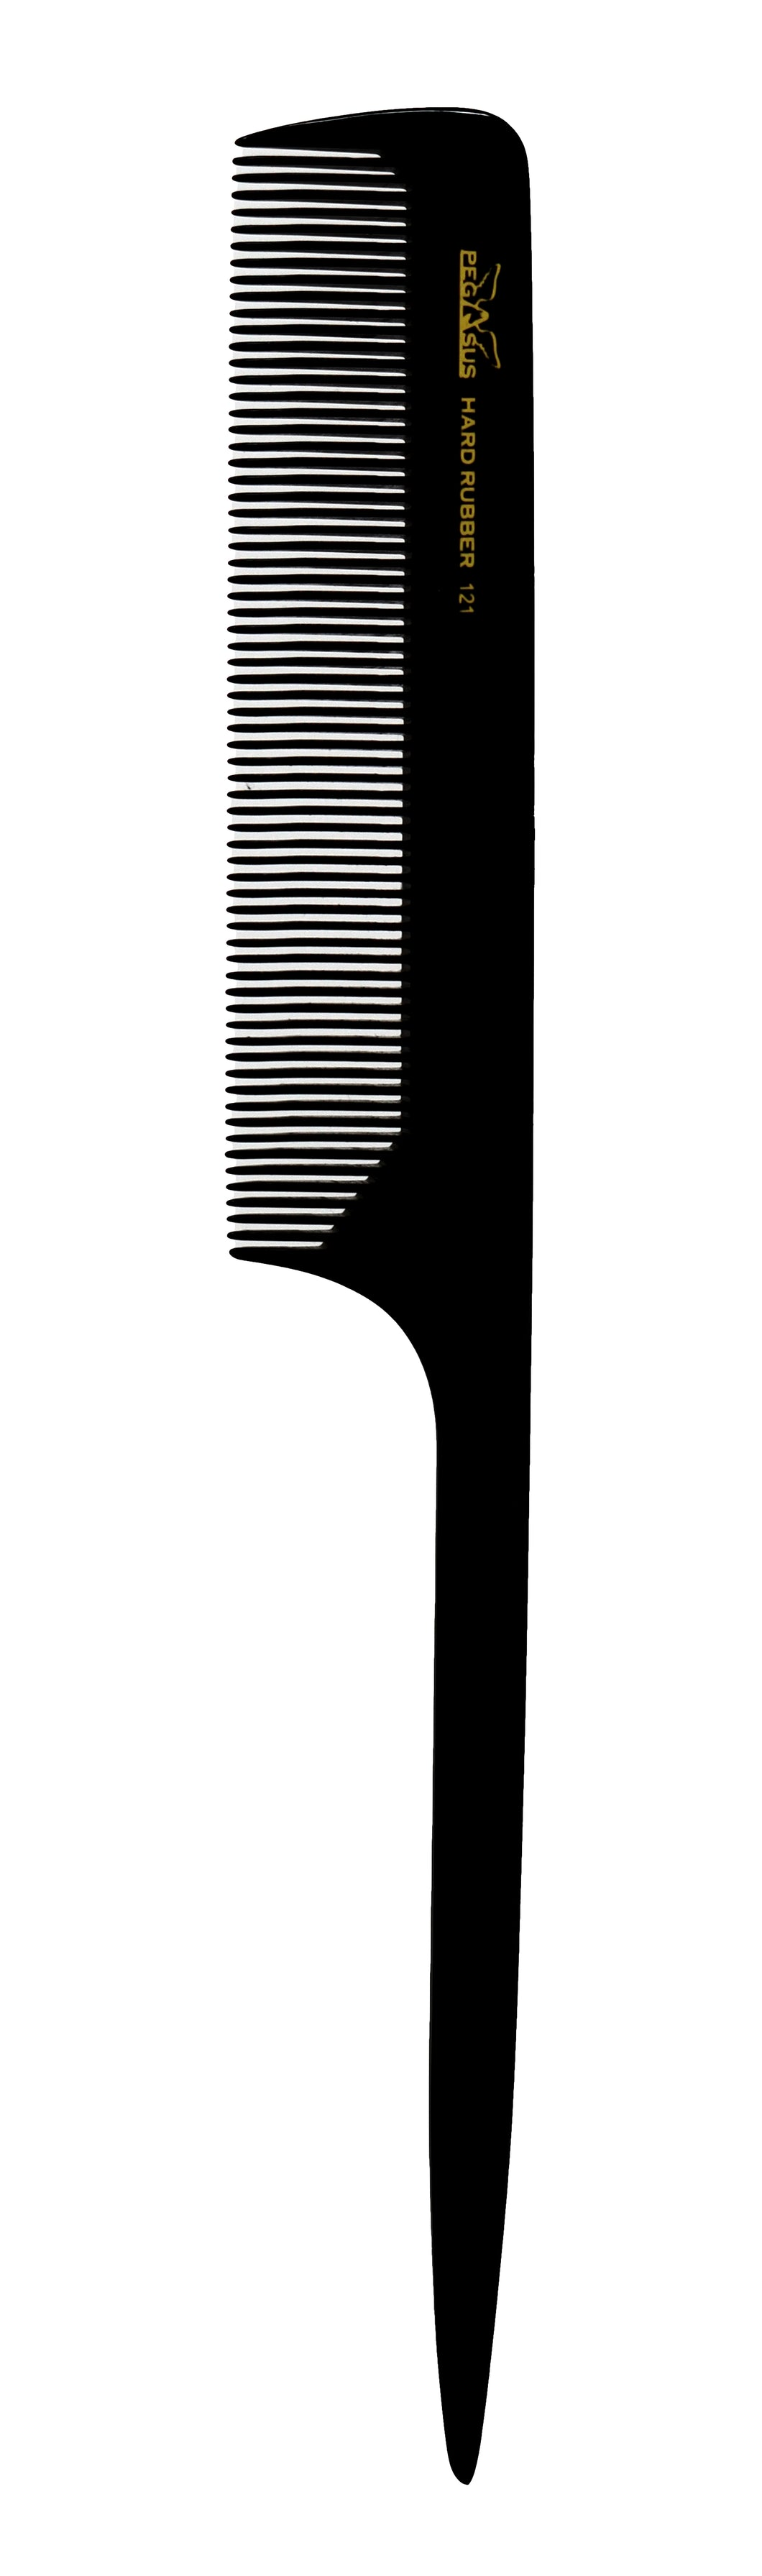 Pegasus 121 Black Fine Teeth Rattail Hair Comb. Heat Resistant Comb 1pc